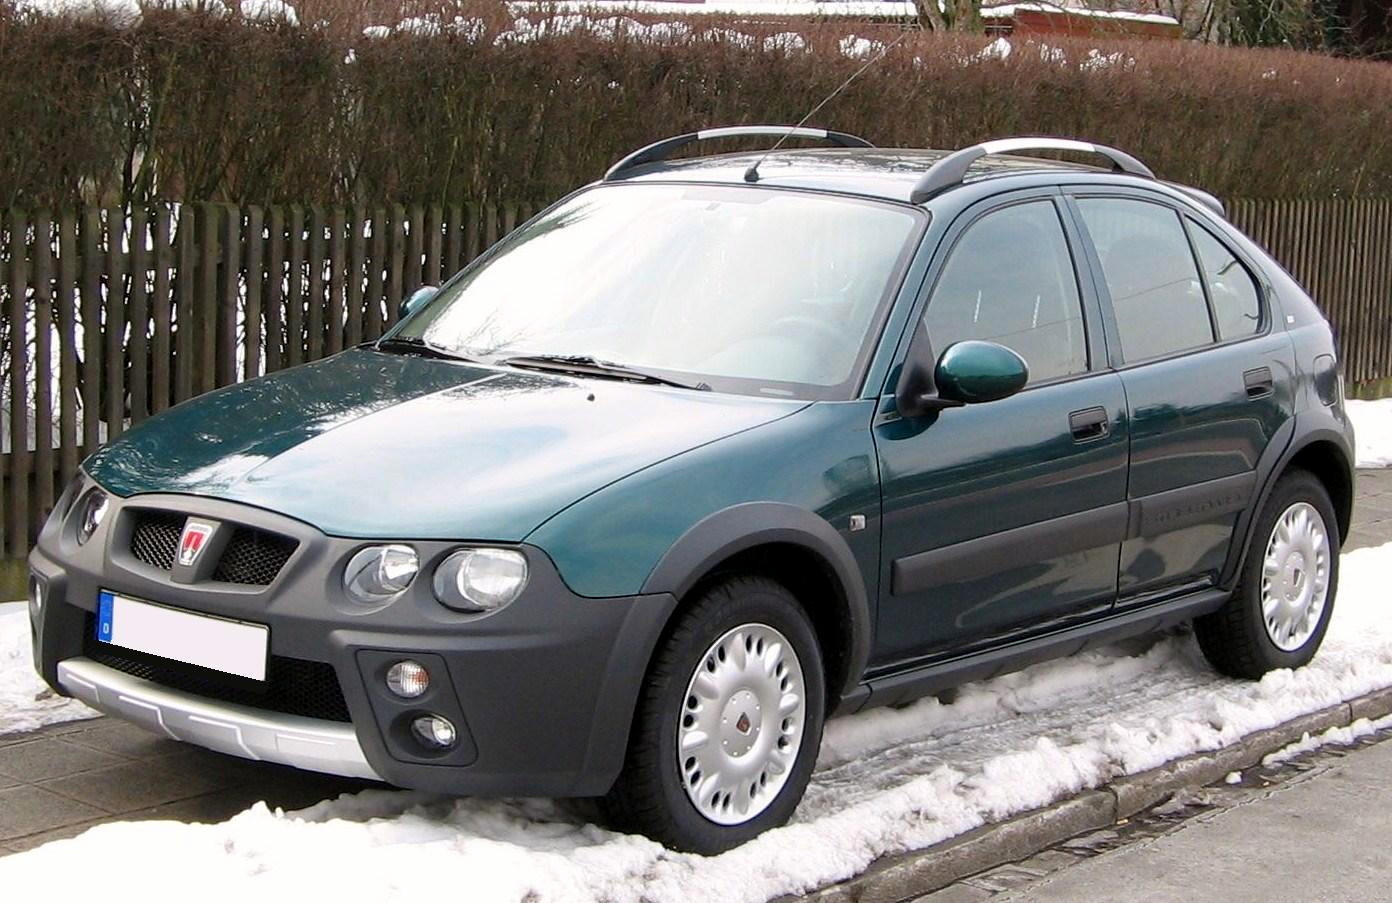 File:2005 Rover Streetwise.jpg - Wikimedia Commons